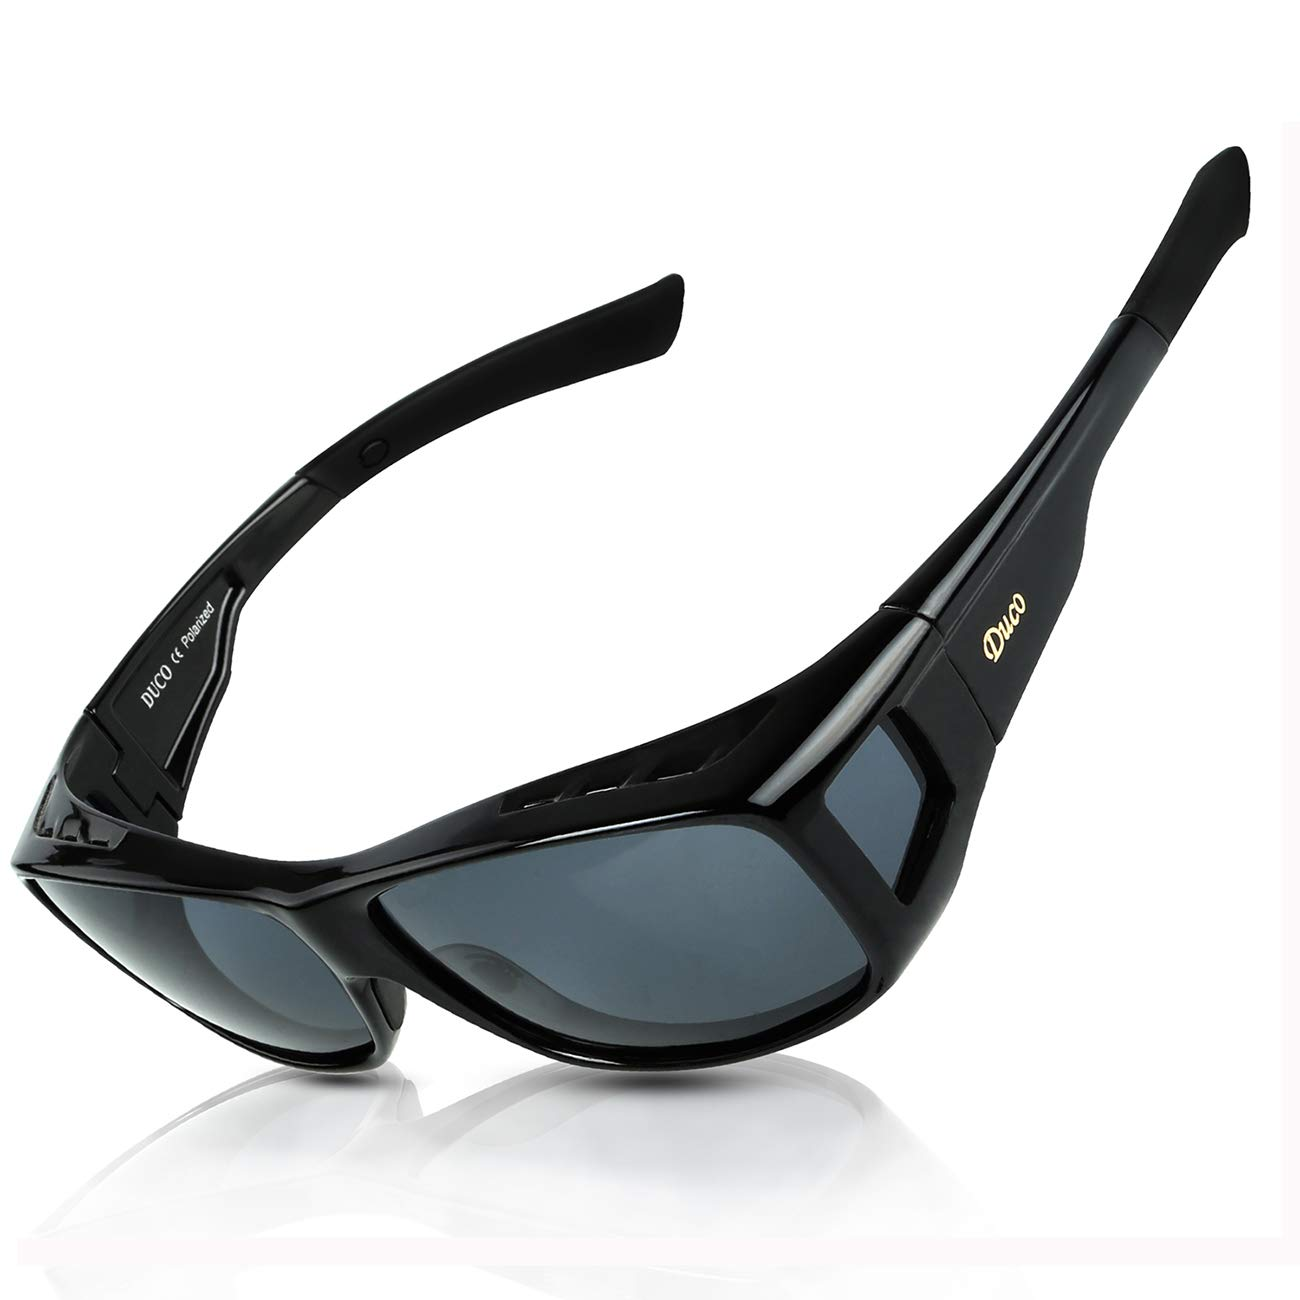 fa8fed622b Amazon.com  Duco Unisex Wear Over Prescription Glasses Rx Glasses Polarized  Sunglasses 8953 (L Size Black Grey)  Clothing